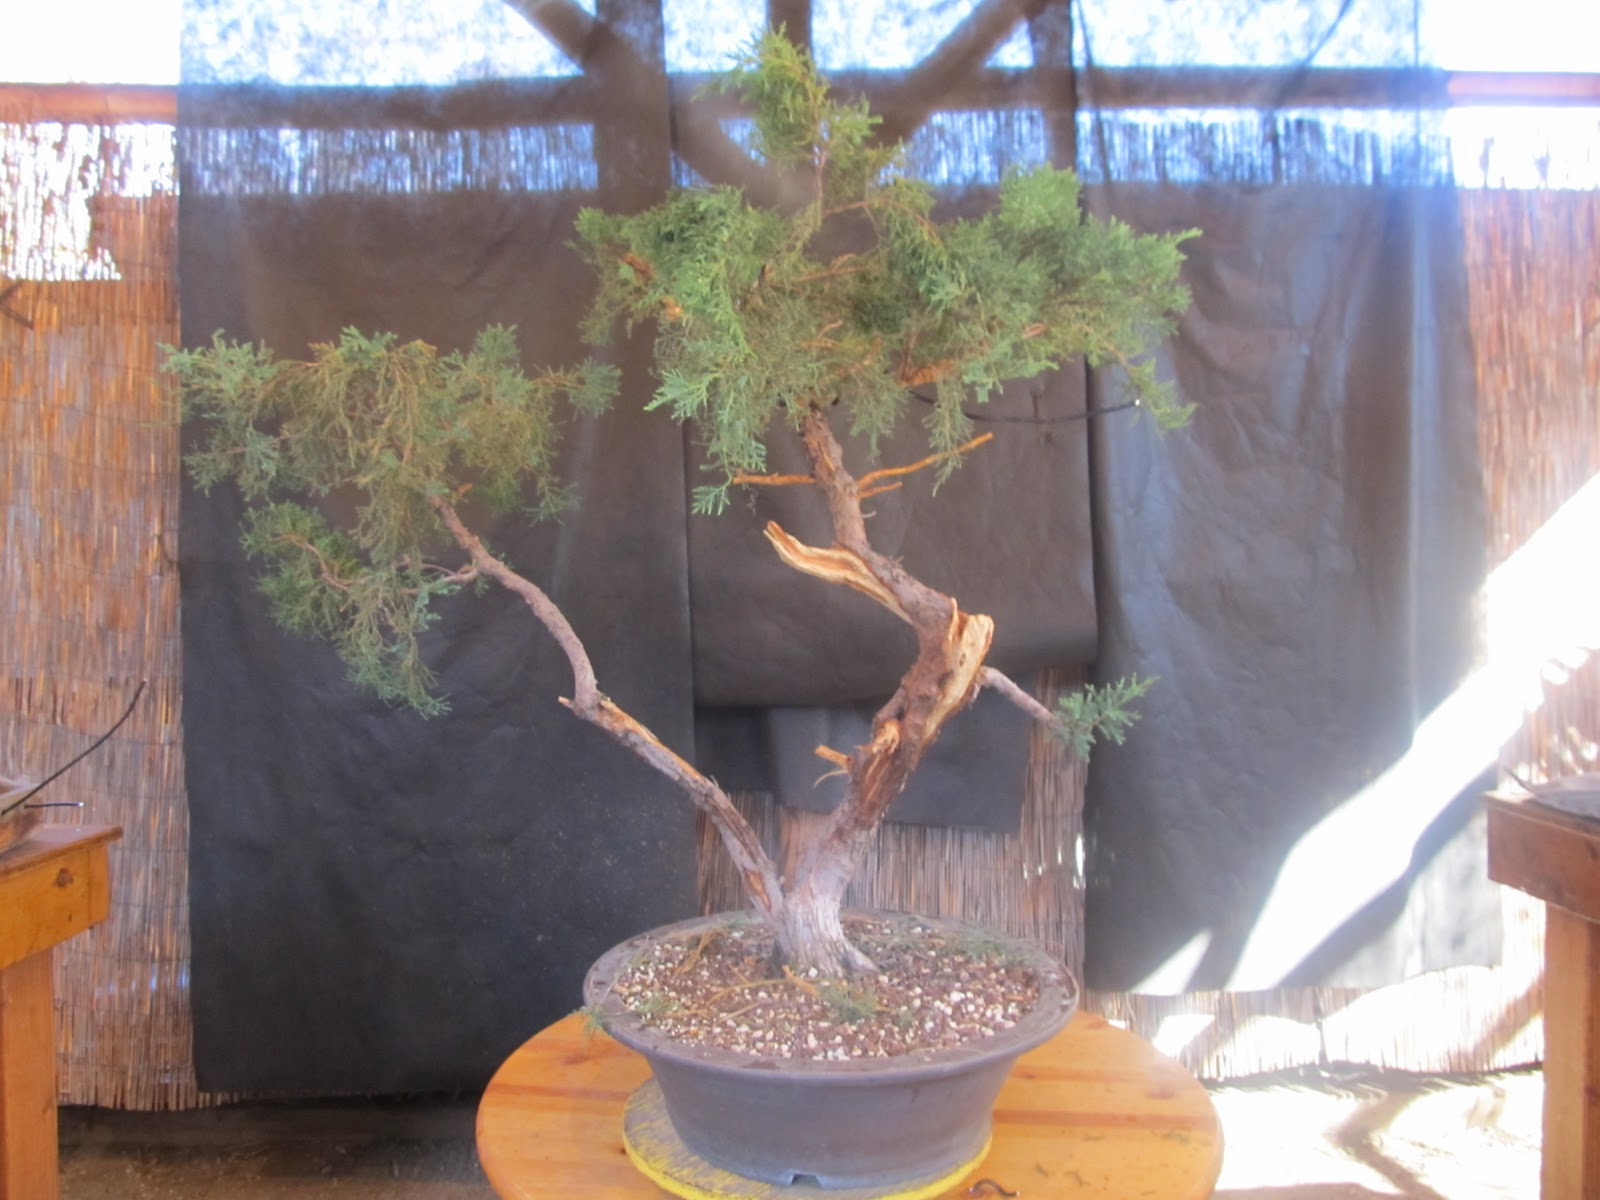 Bonsaibps Bonsai Blog Large Juniper Project Part 3 Wiring Branches The Is Starting To Emerge Next Step Will Be Choose And Place Then Some Fine Well On Our Way A Very Cool